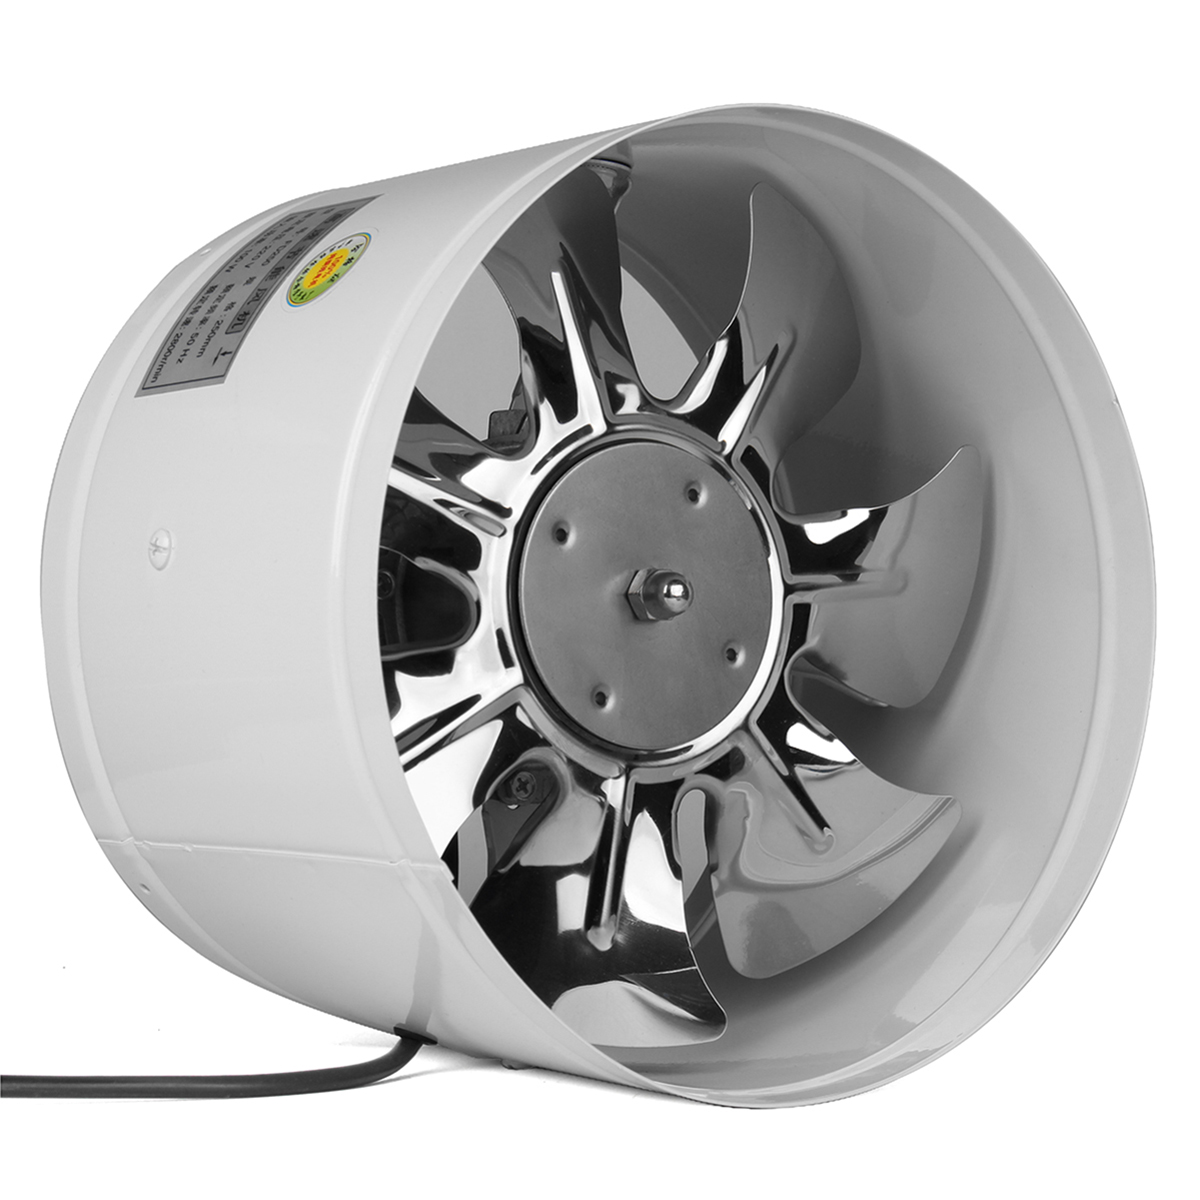 220V 4/6/8/10 Inch Inline Duct Fan Booster Exhaust Blower Air Cooling Vent White